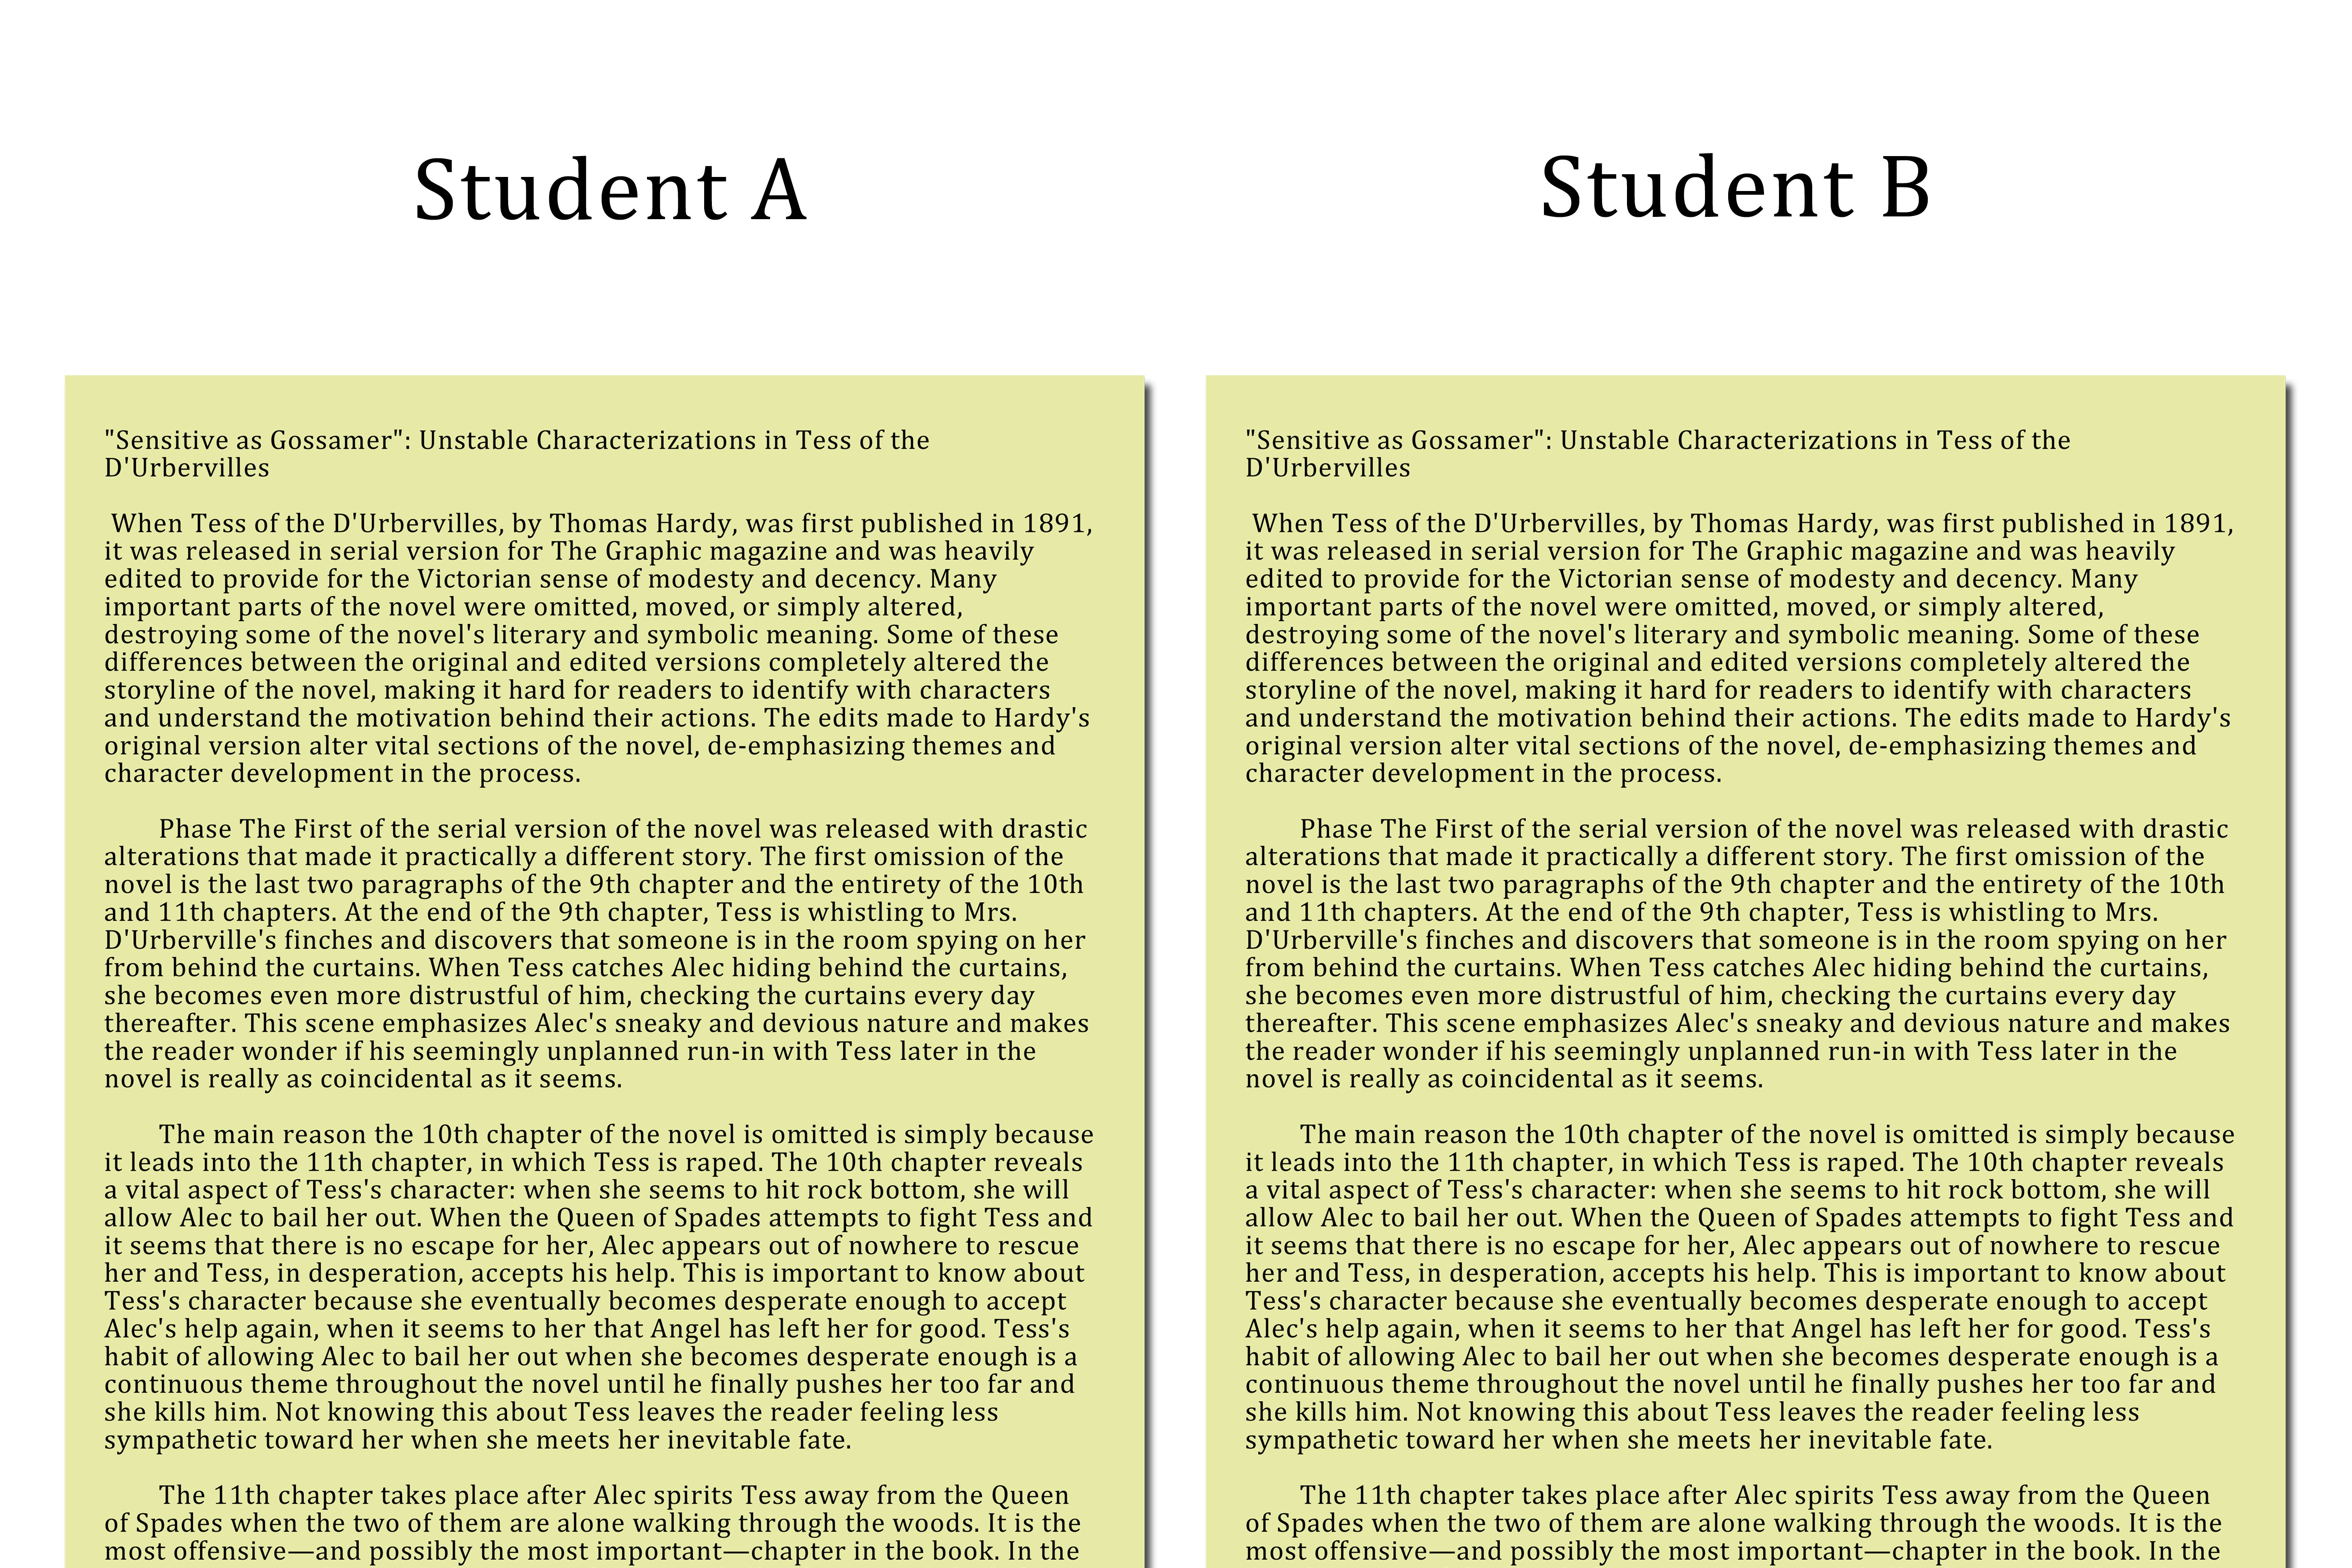 004 Write Your Essay How To Paper Steps Pictures Pay Better Essays Reddit Amazon Pdf Book By Bryan Greetham In English The Guardian Phenomenal A Good Narrative Question Tips Full